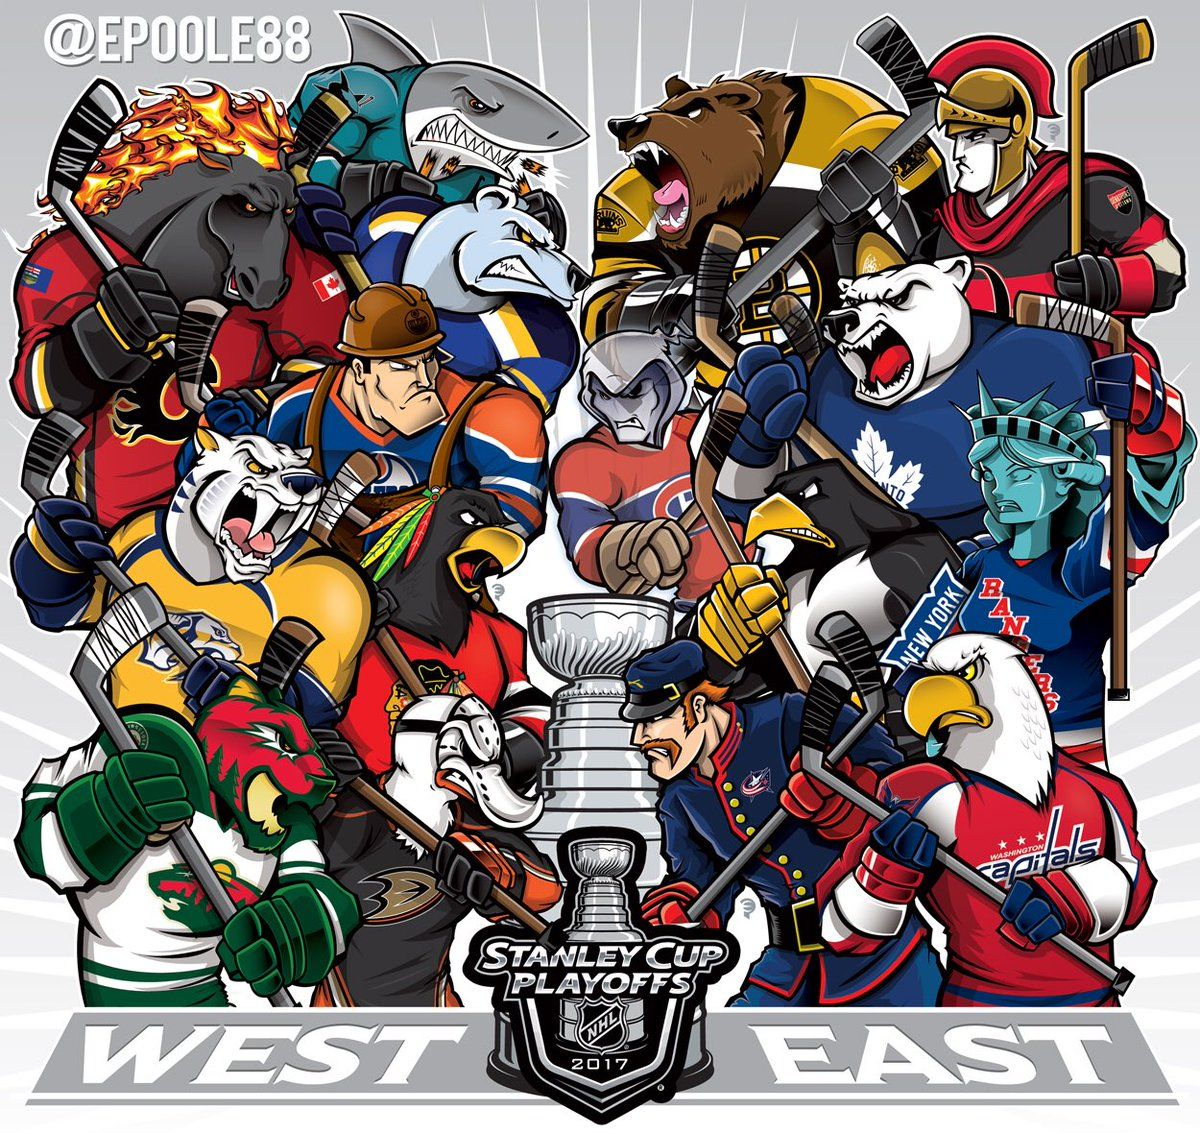 Nhl Playoff Mascots As Cartoon Warriors Will Get You Amped Nhl Playoffs Hockey Humor Nhl Wallpaper